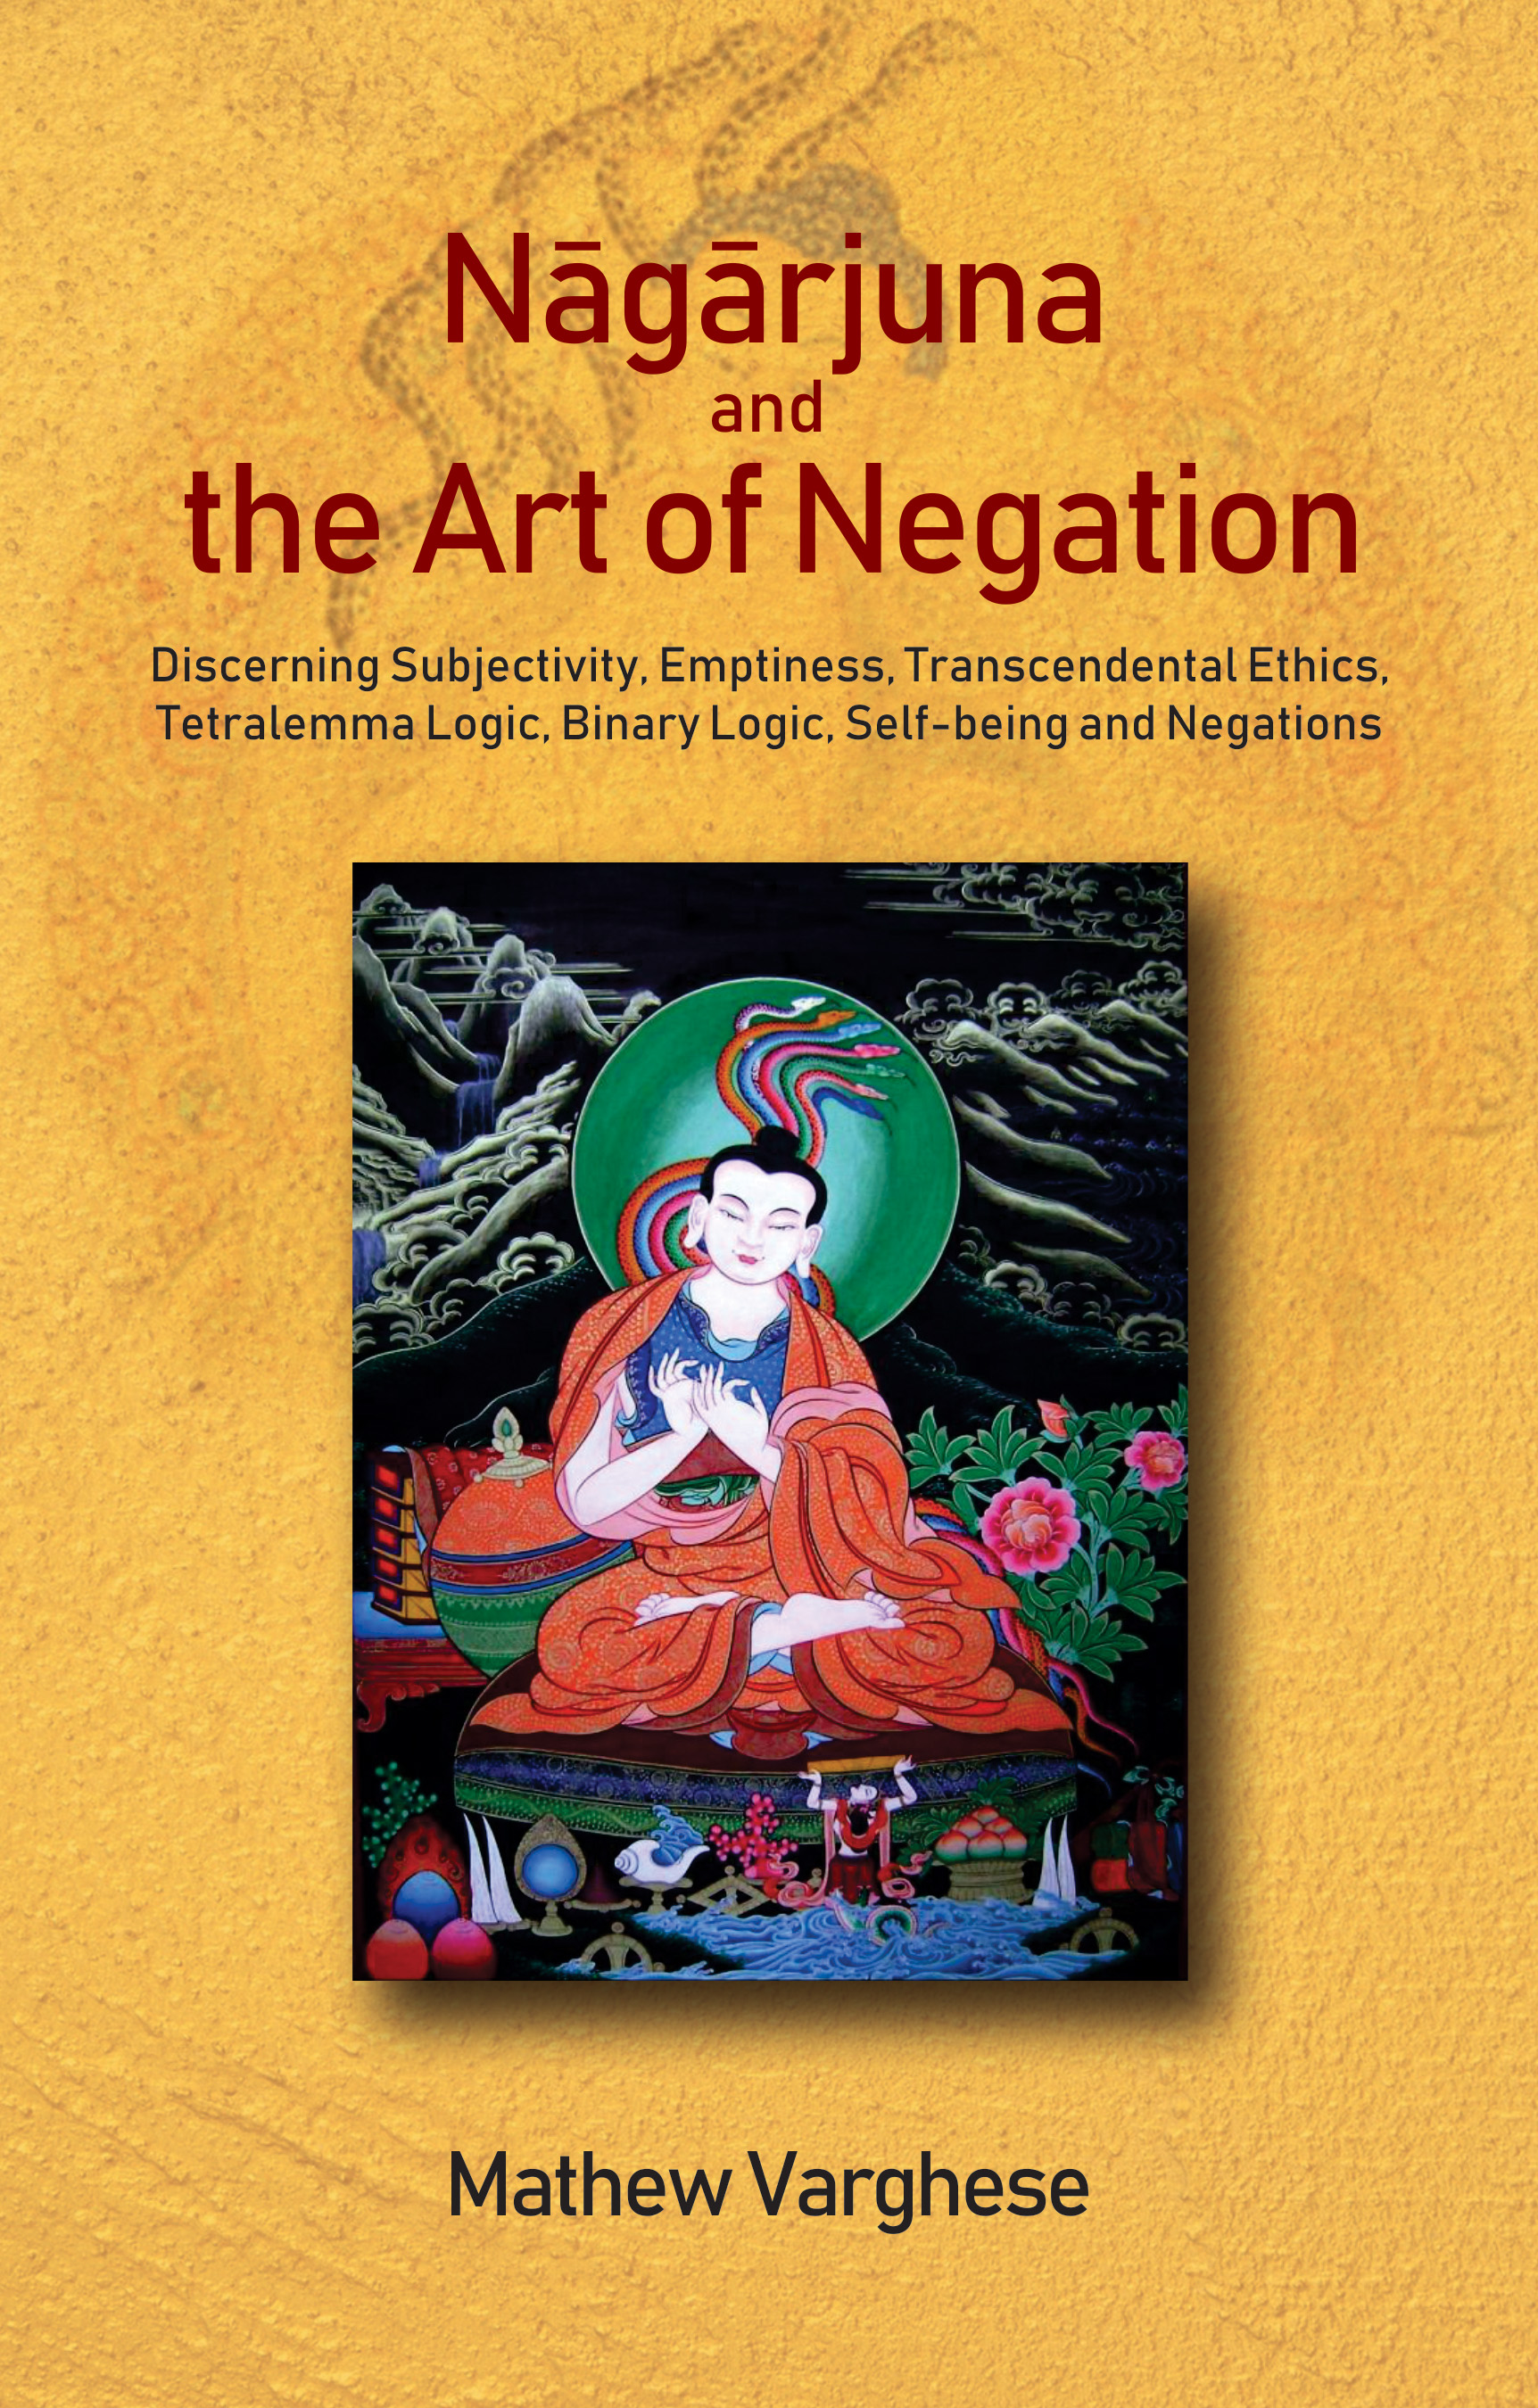 Nagarjuna and the Art of Negation